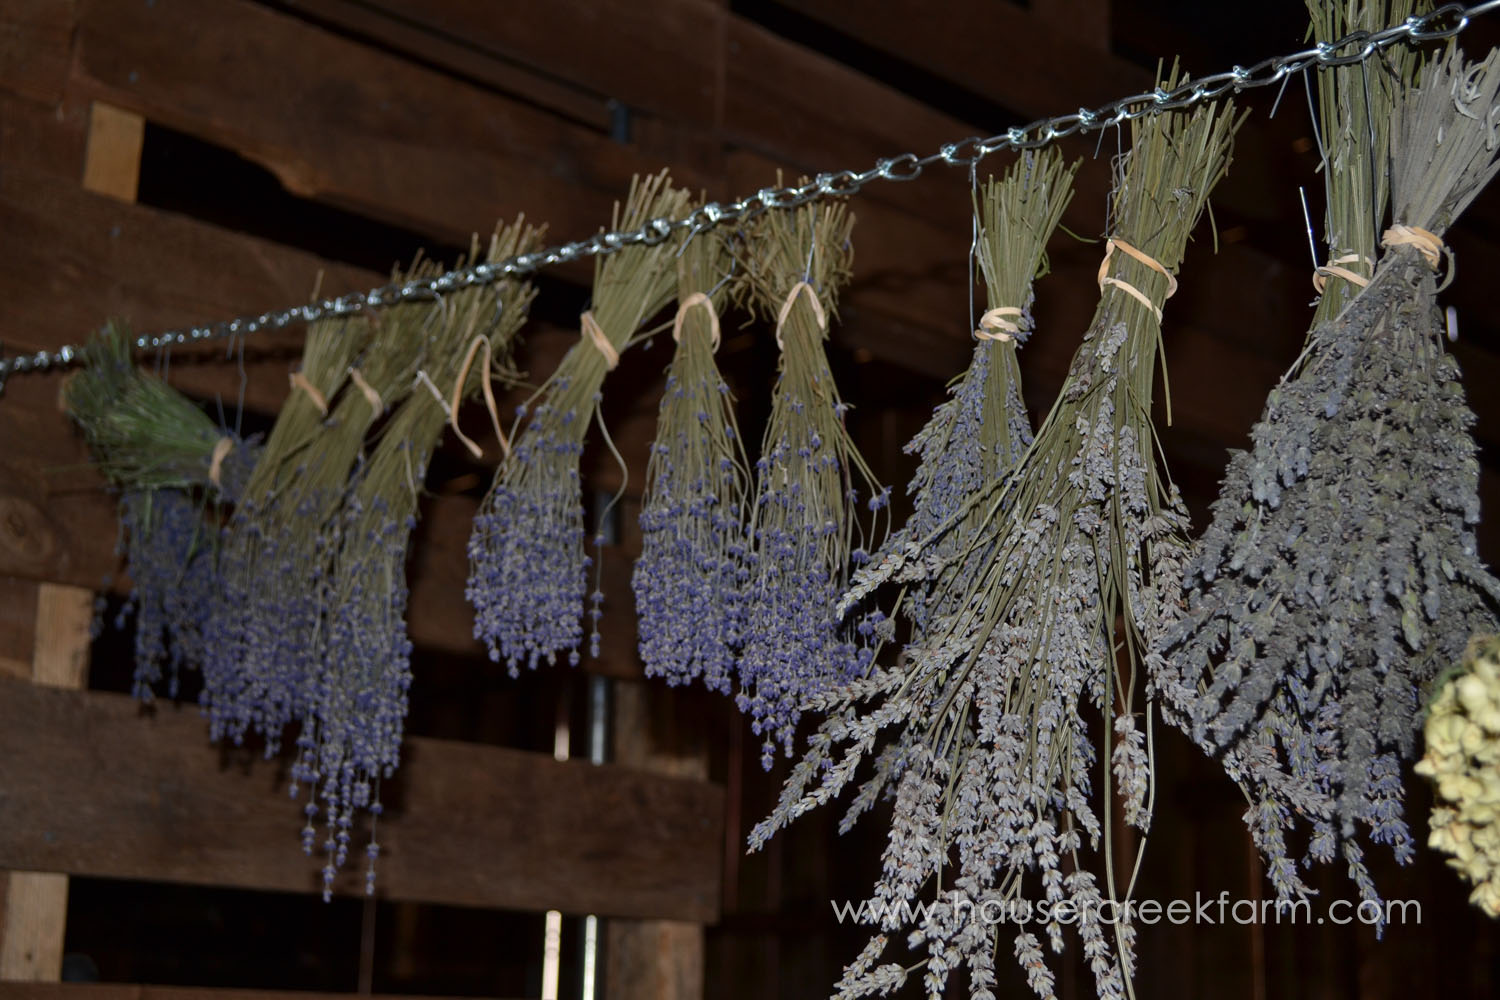 bundles-of-purple-blossom-lavender-plants-hung-upside-drying-in-barn-from-chain-DSC_0557.jpg